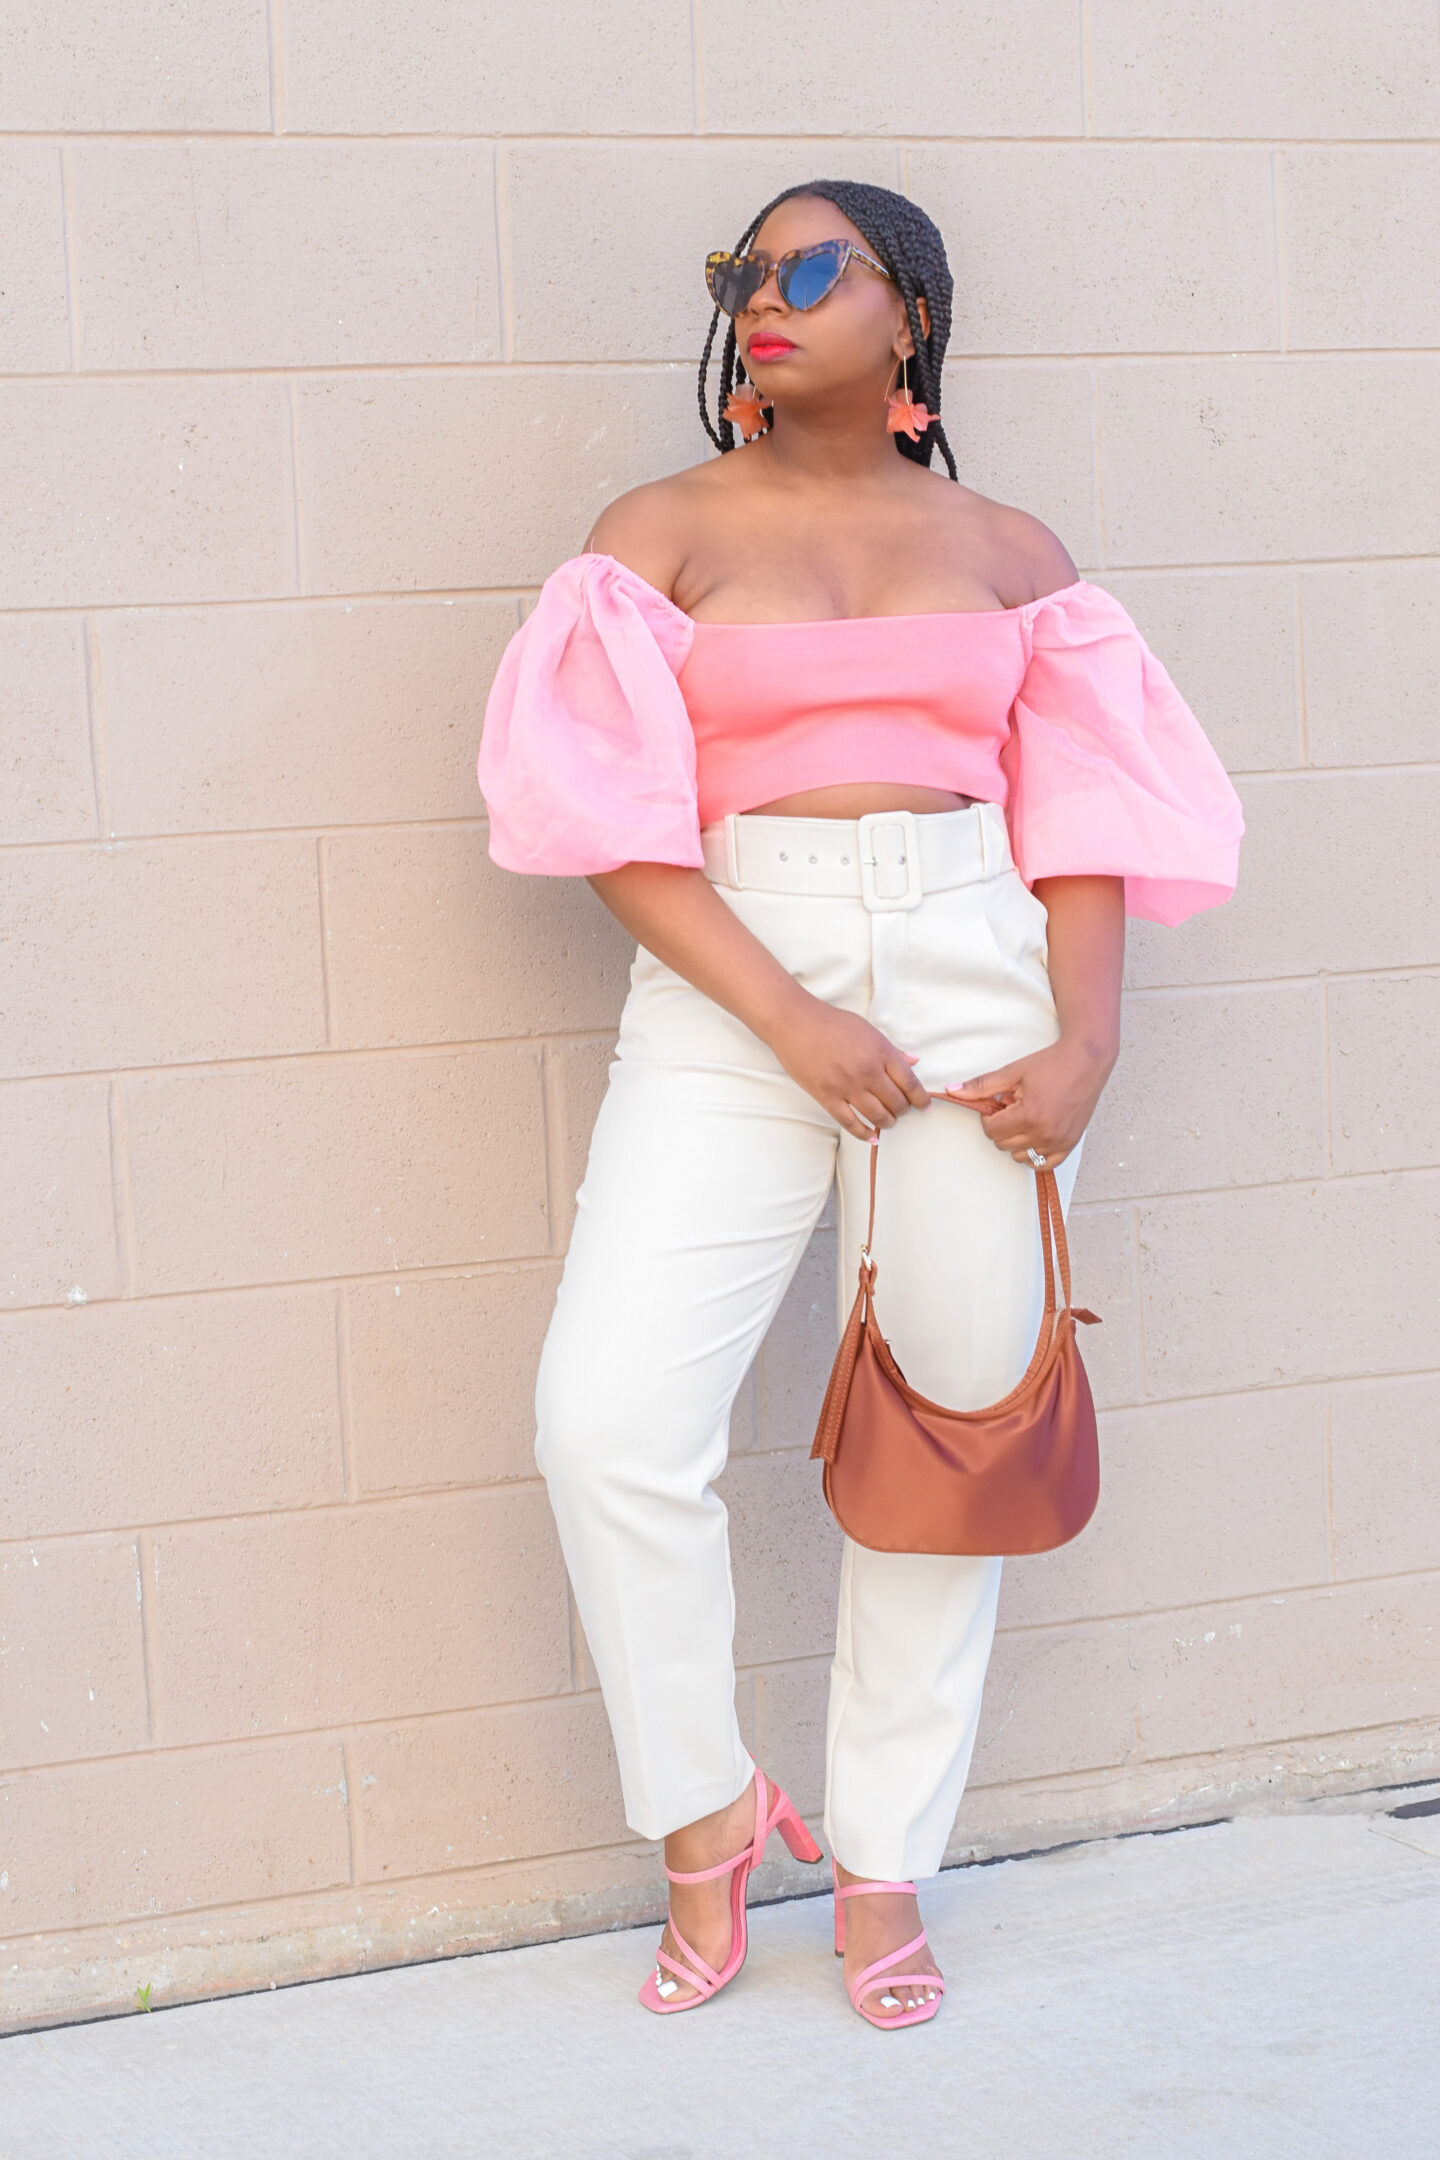 Coral and Cream; A Summer Hot Color Combo